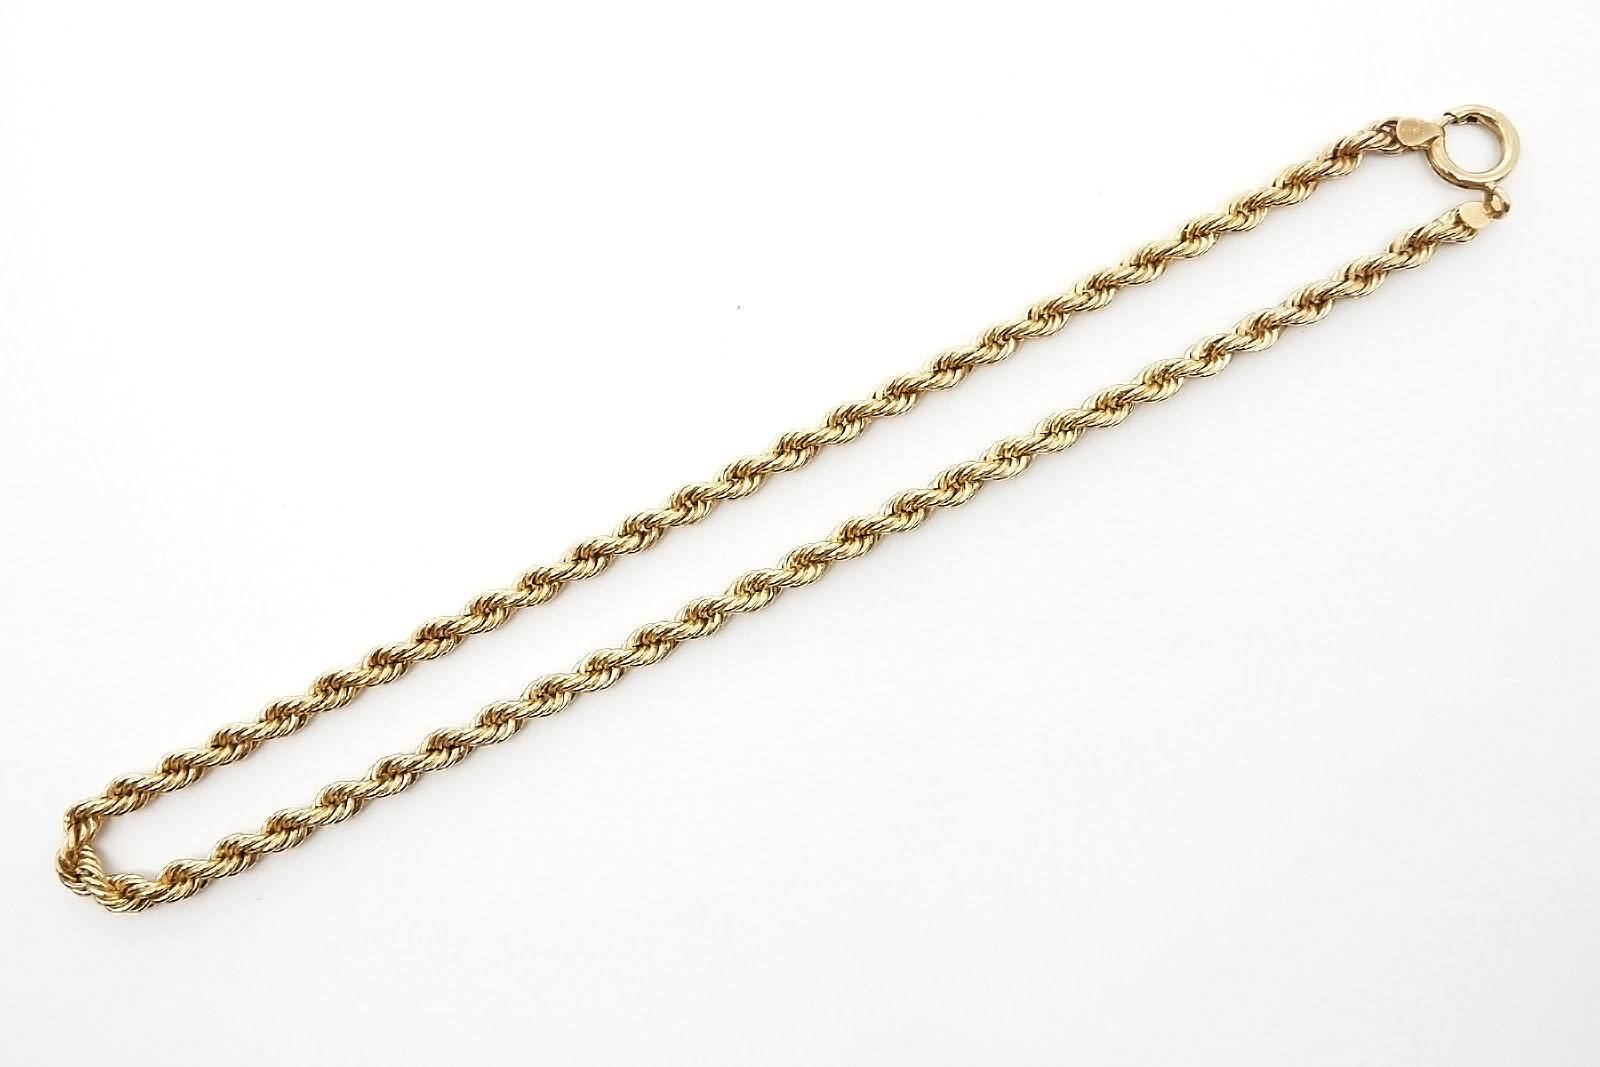 '9ct Yellow Gold Triple Rope Chain, 8.2g'